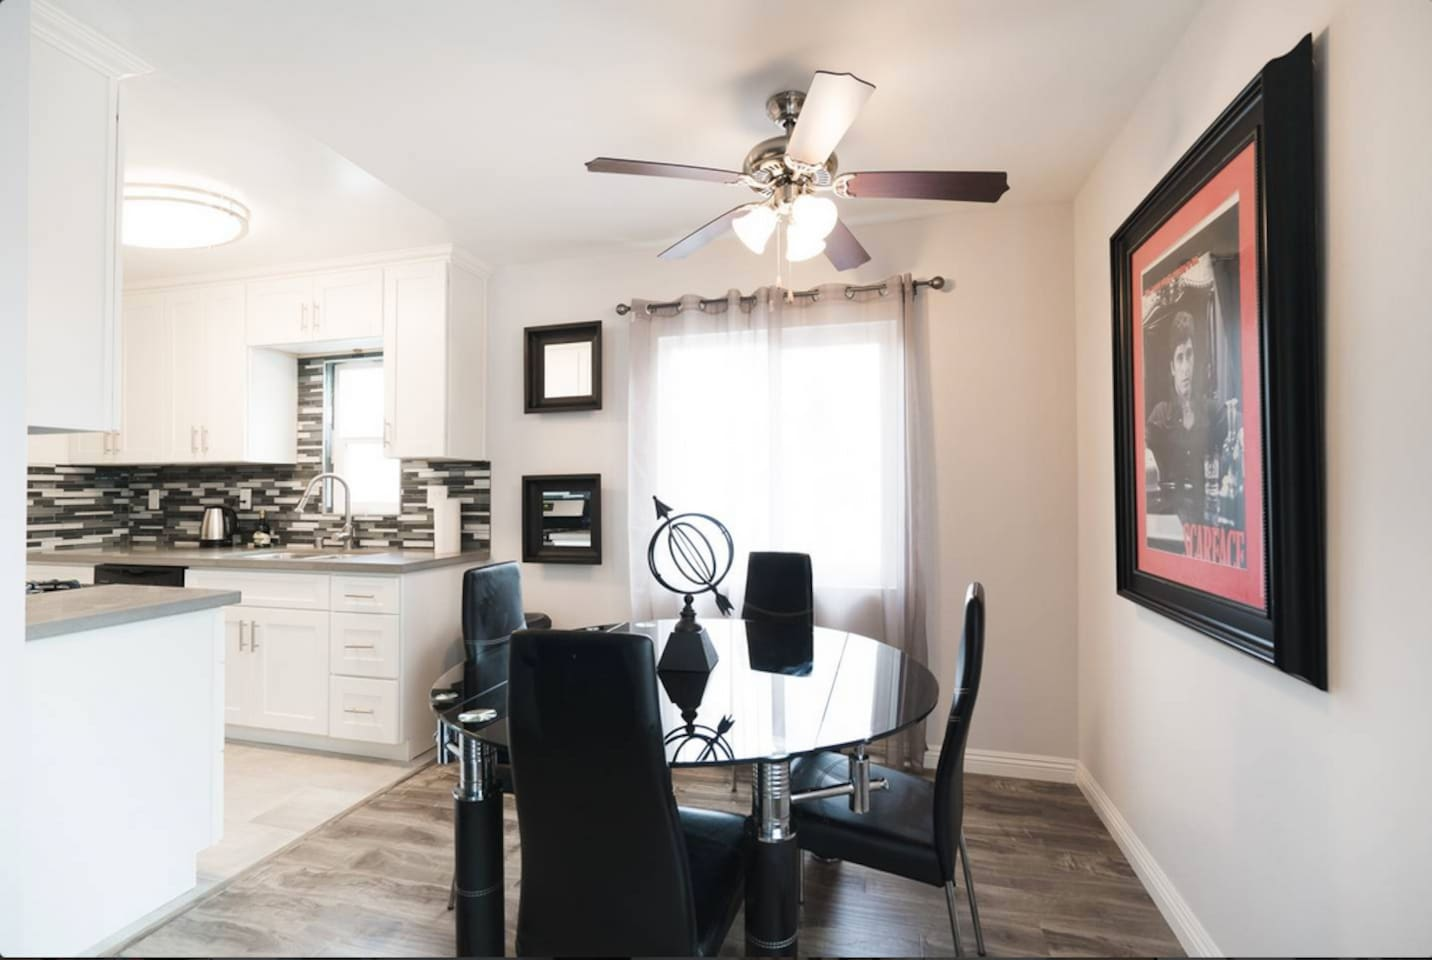 STYLISH 1BDR IN MIDDLE OF HOLLYWOOD - Apartments for Rent in Los ...